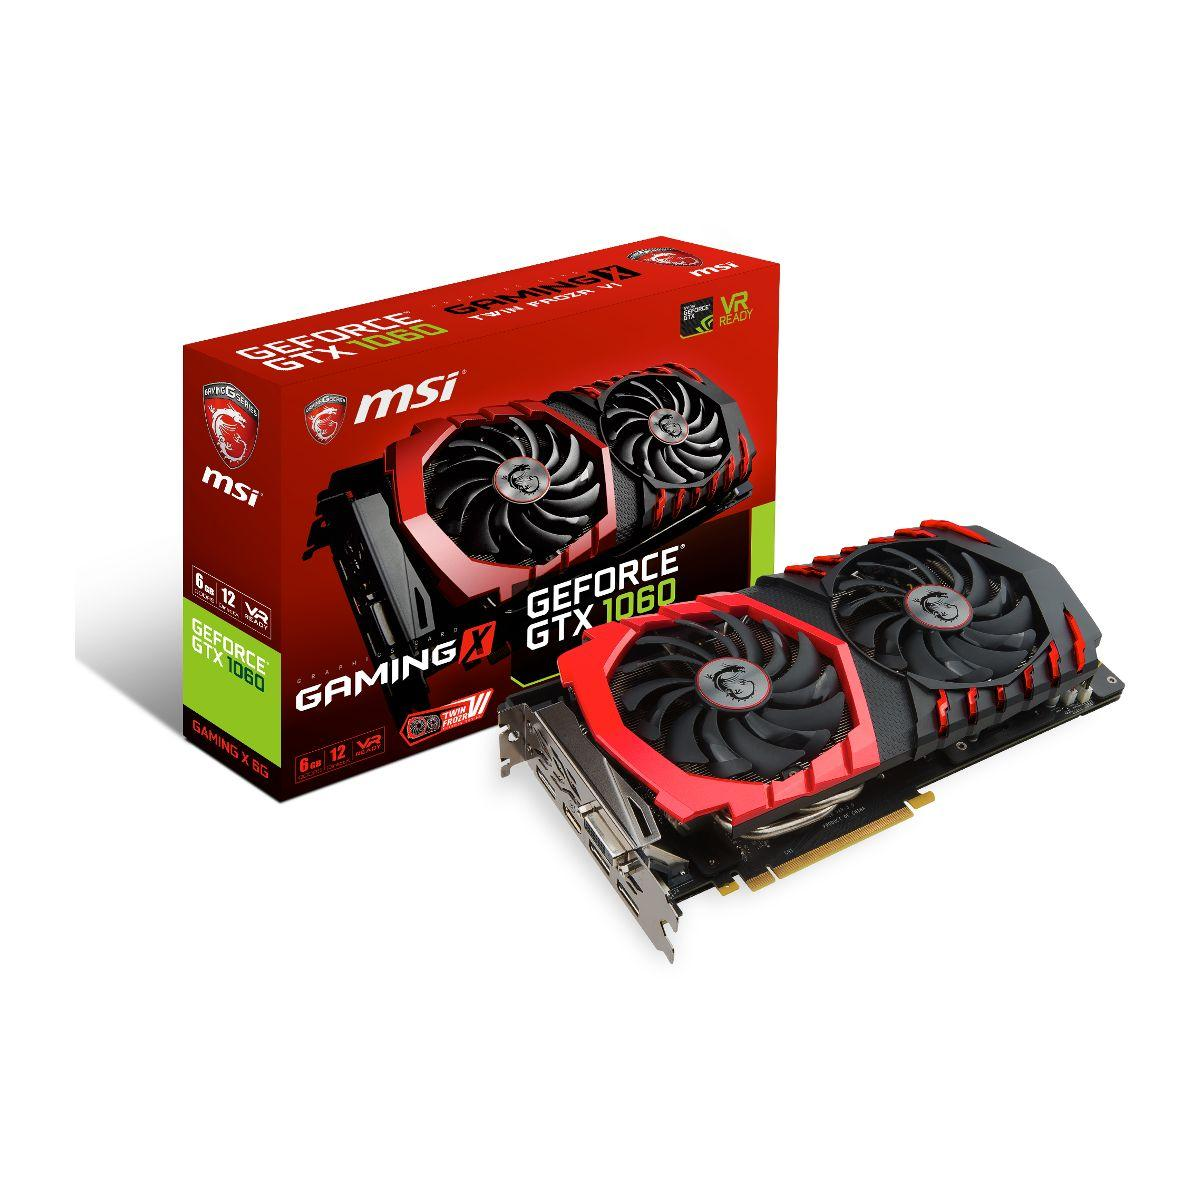 Carte graphique nvidia msi geforce gtx 1060 gaming x 6g - 2% d...